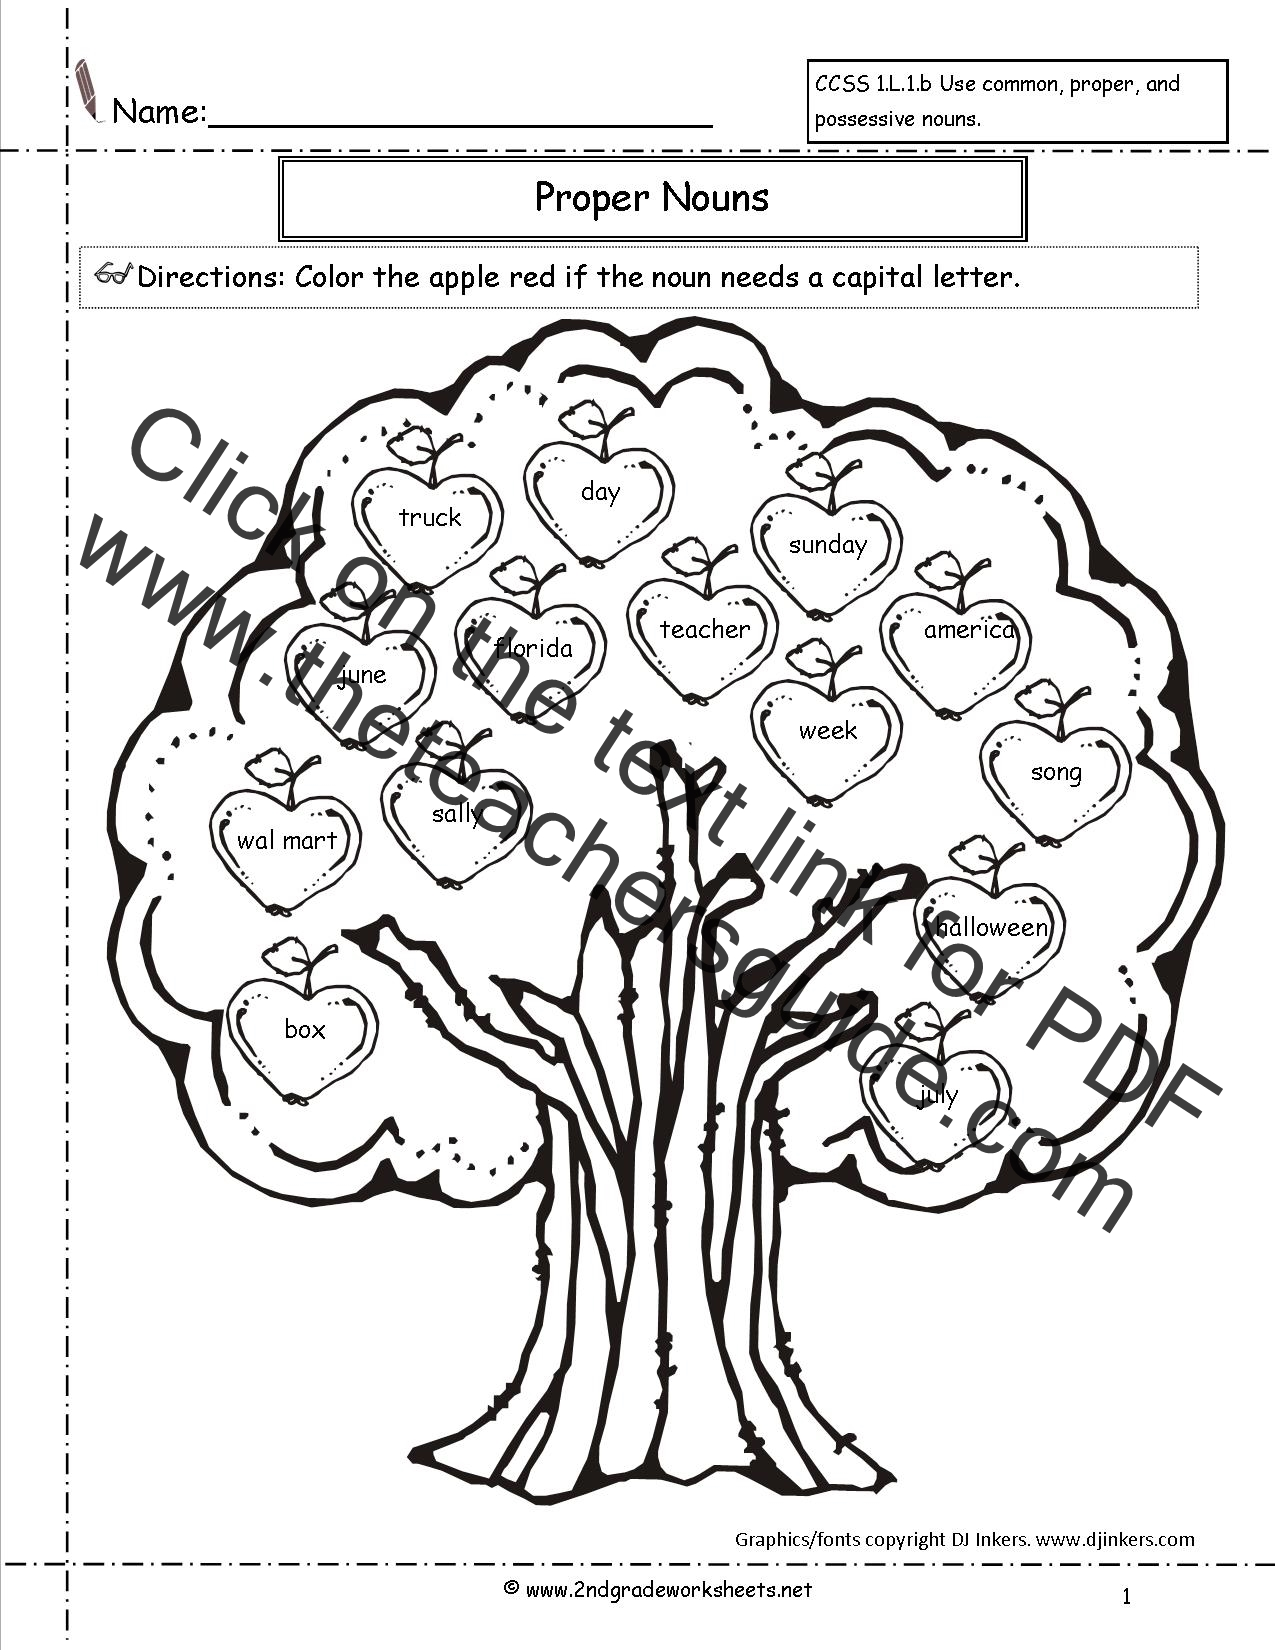 Common and Proper Nouns Worksheets from The Teacher's Guide